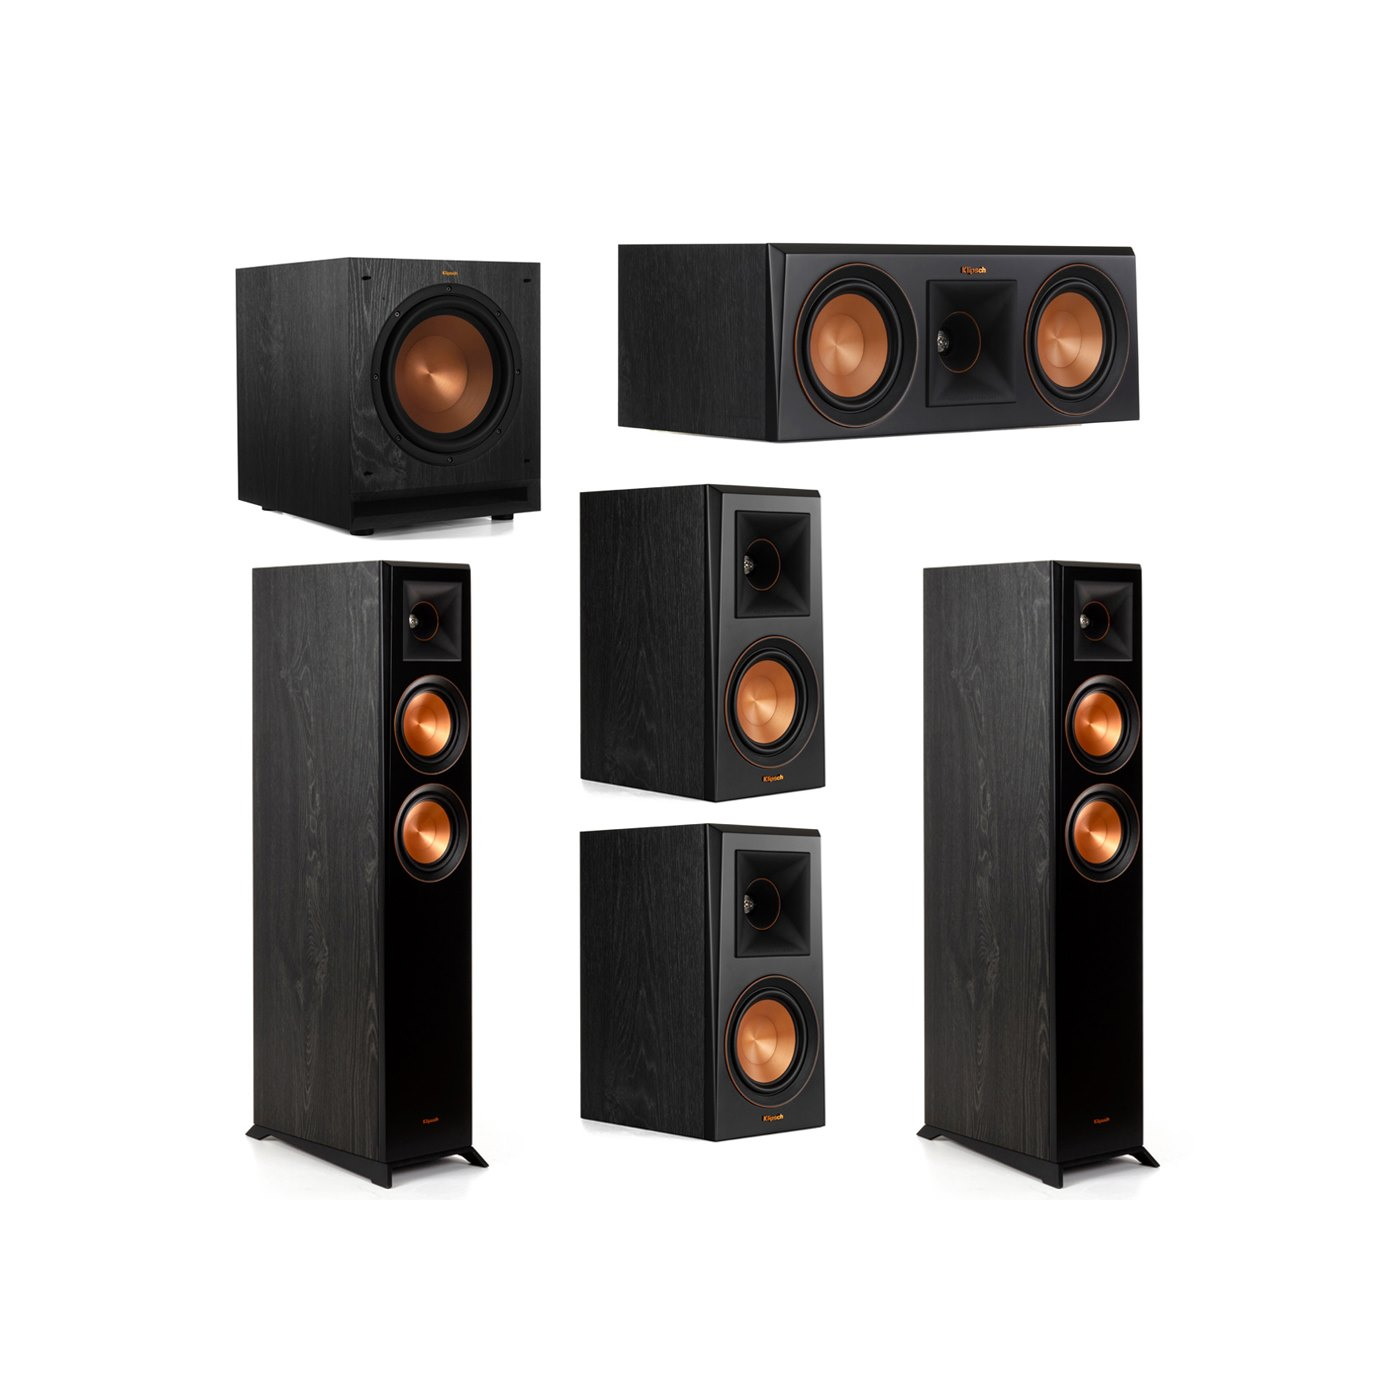 Klipsch 5.1 System with 2 RP-5000F Floorstanding Speakers, 1 Klipsch RP-500C Center Speaker, 2 Klipsch RP-500M Surround Speakers, 1 Klipsch SPL-100 Subwoofer